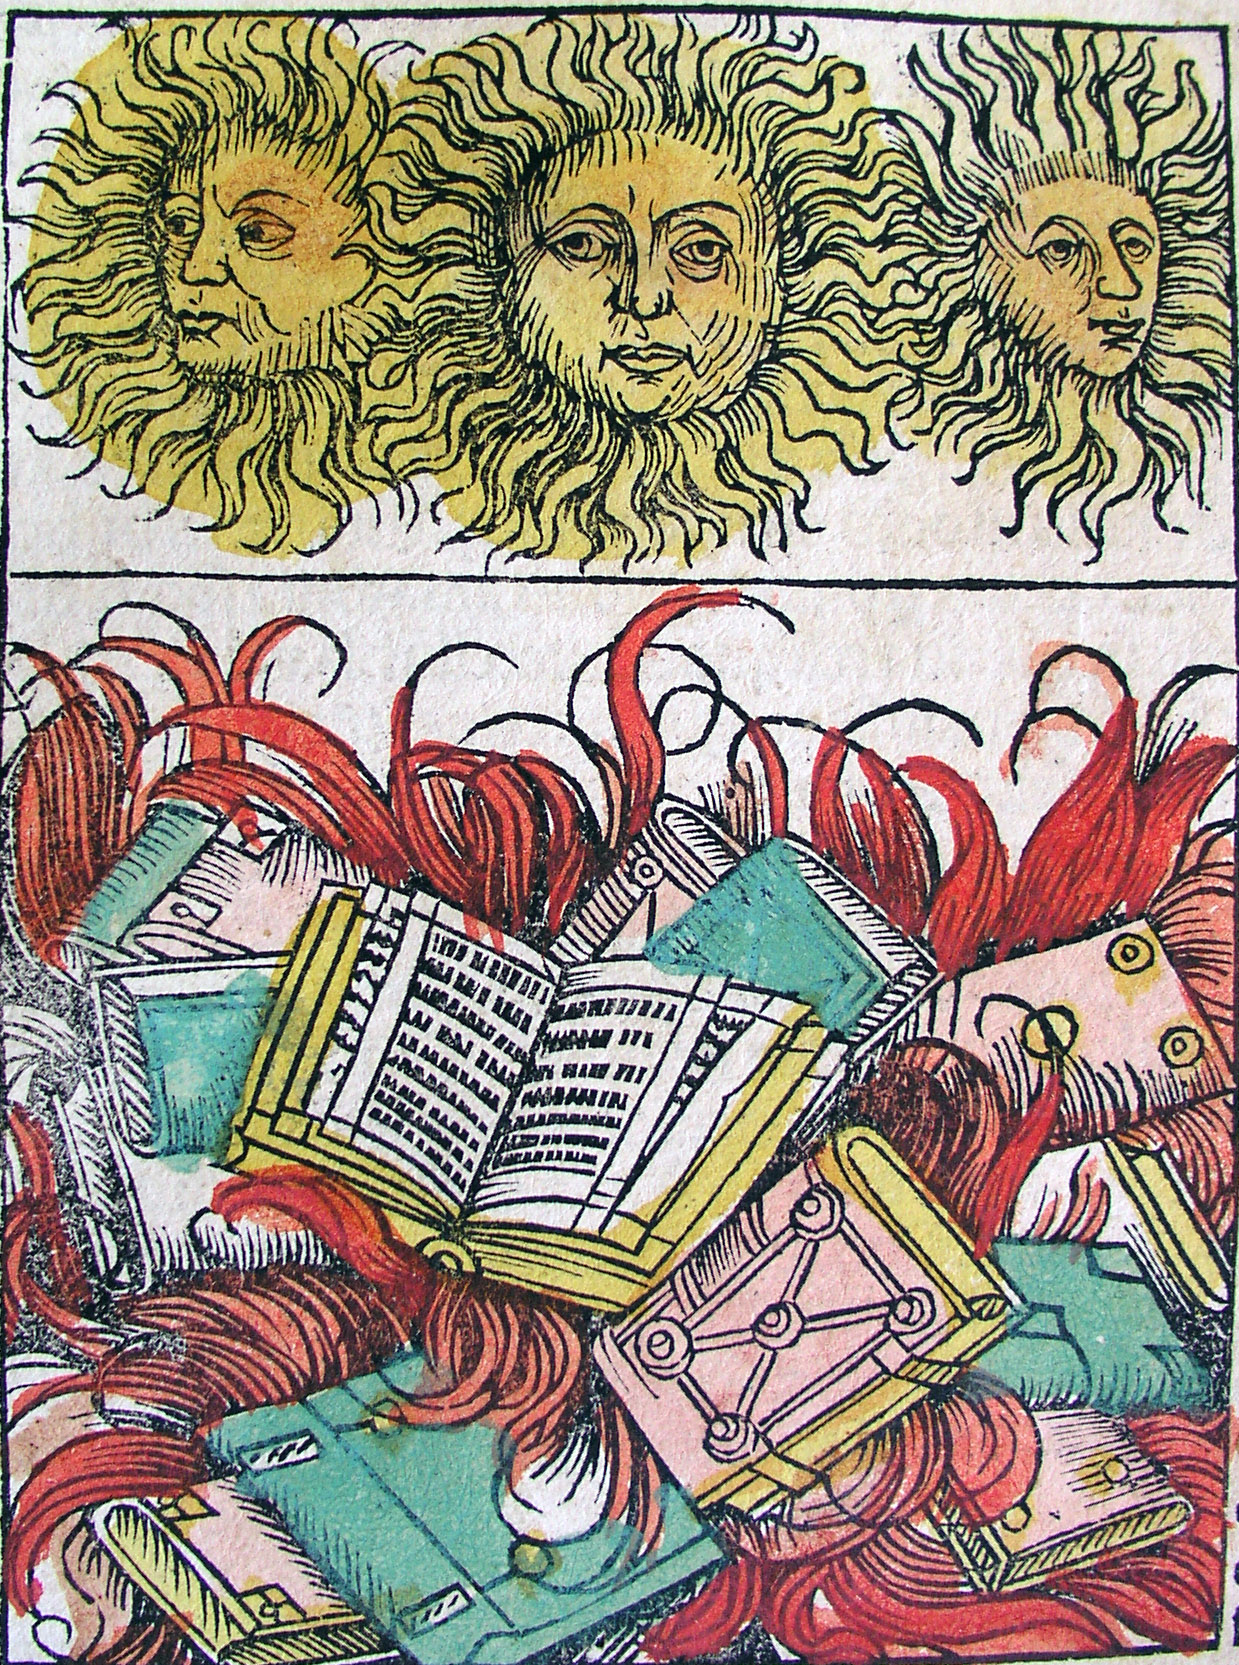 Book Burning by Hartmann Schedel, 1440-1514. Image in public domain; from Wikimedia Commons